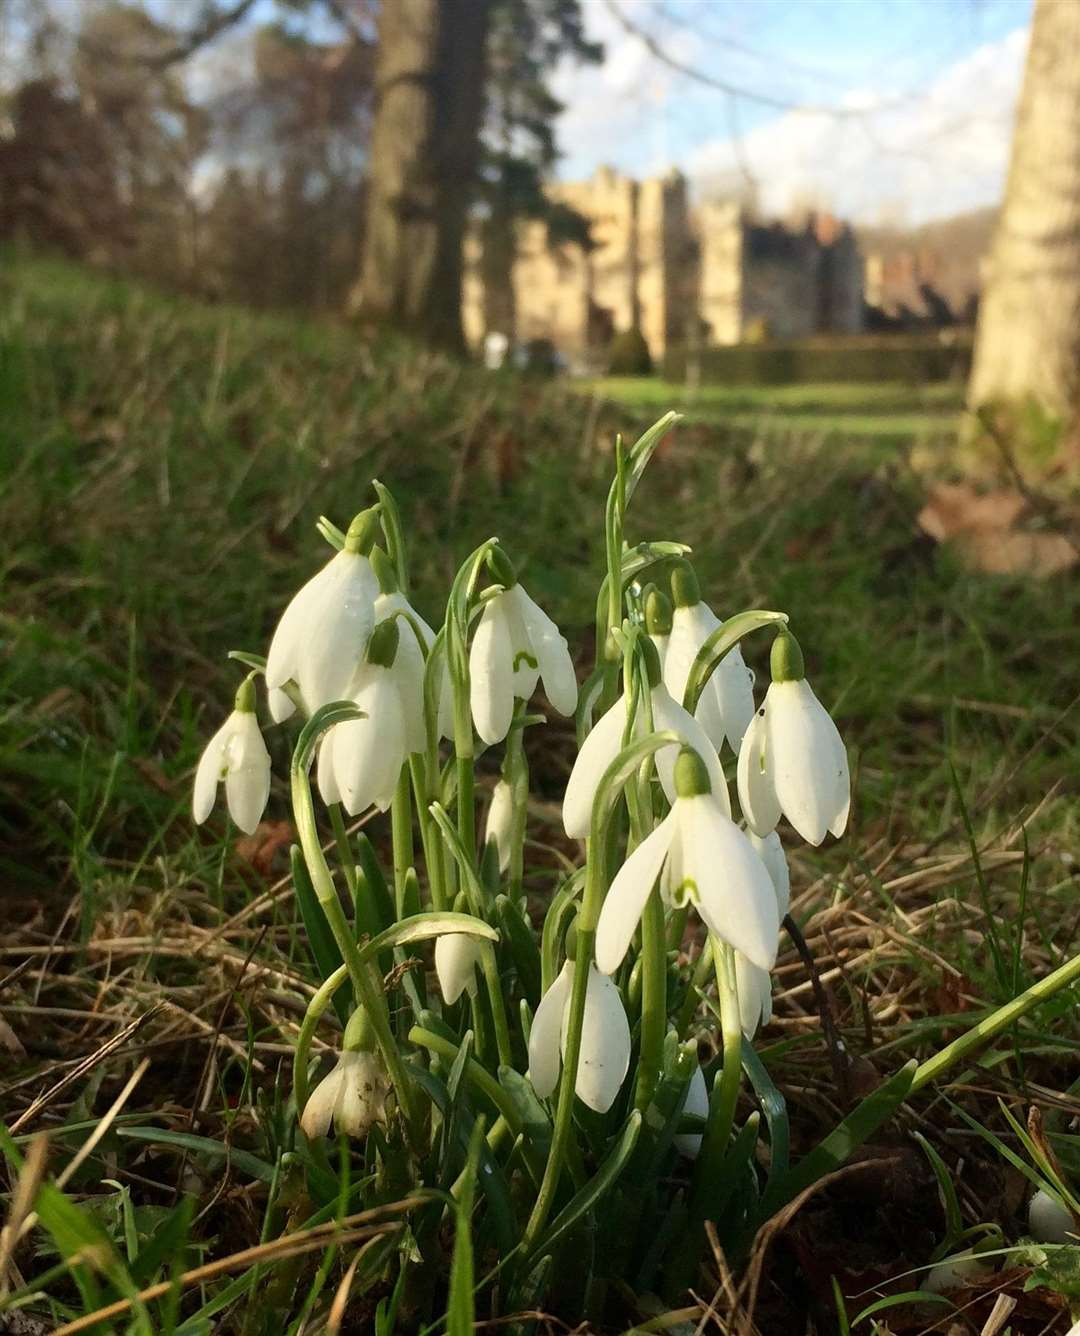 You can see the snowdrops at Hever Castle